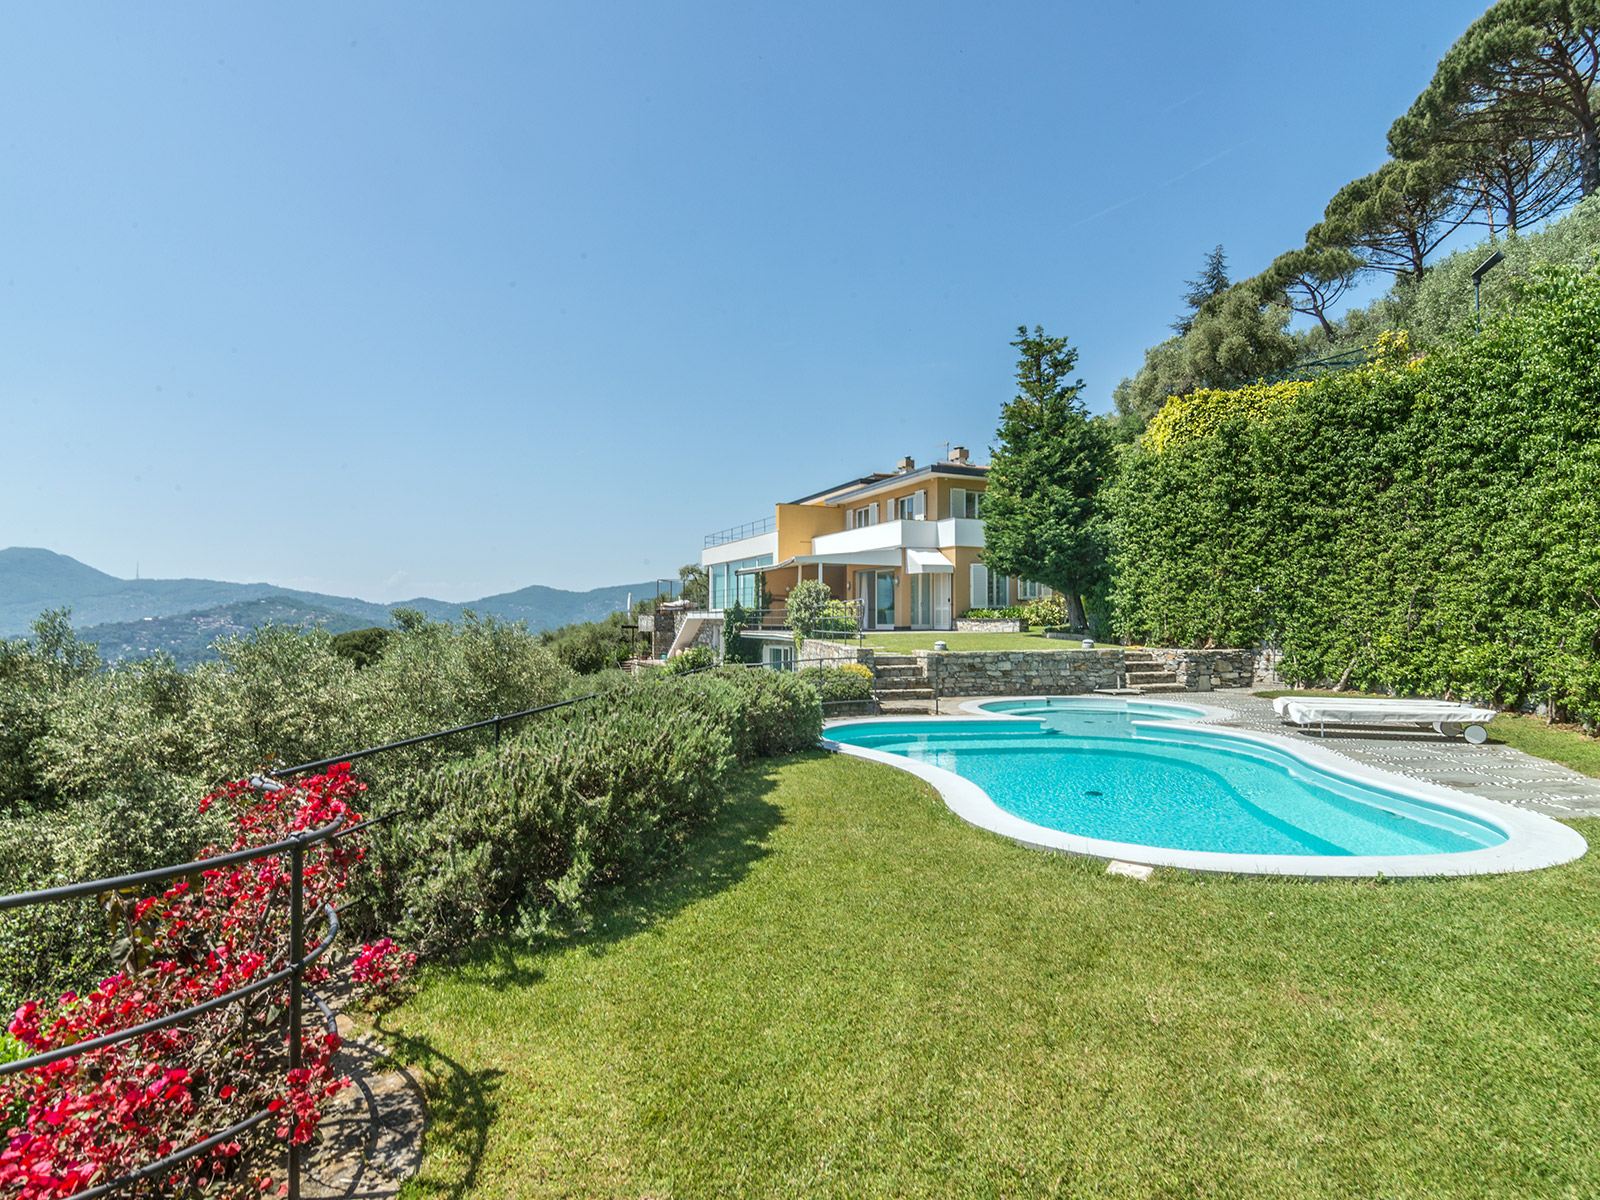 Single Family Home for Sale at Panoramic waterfront villa with pool Via Sant' Ambrogio Zoagli, 16035 Italy